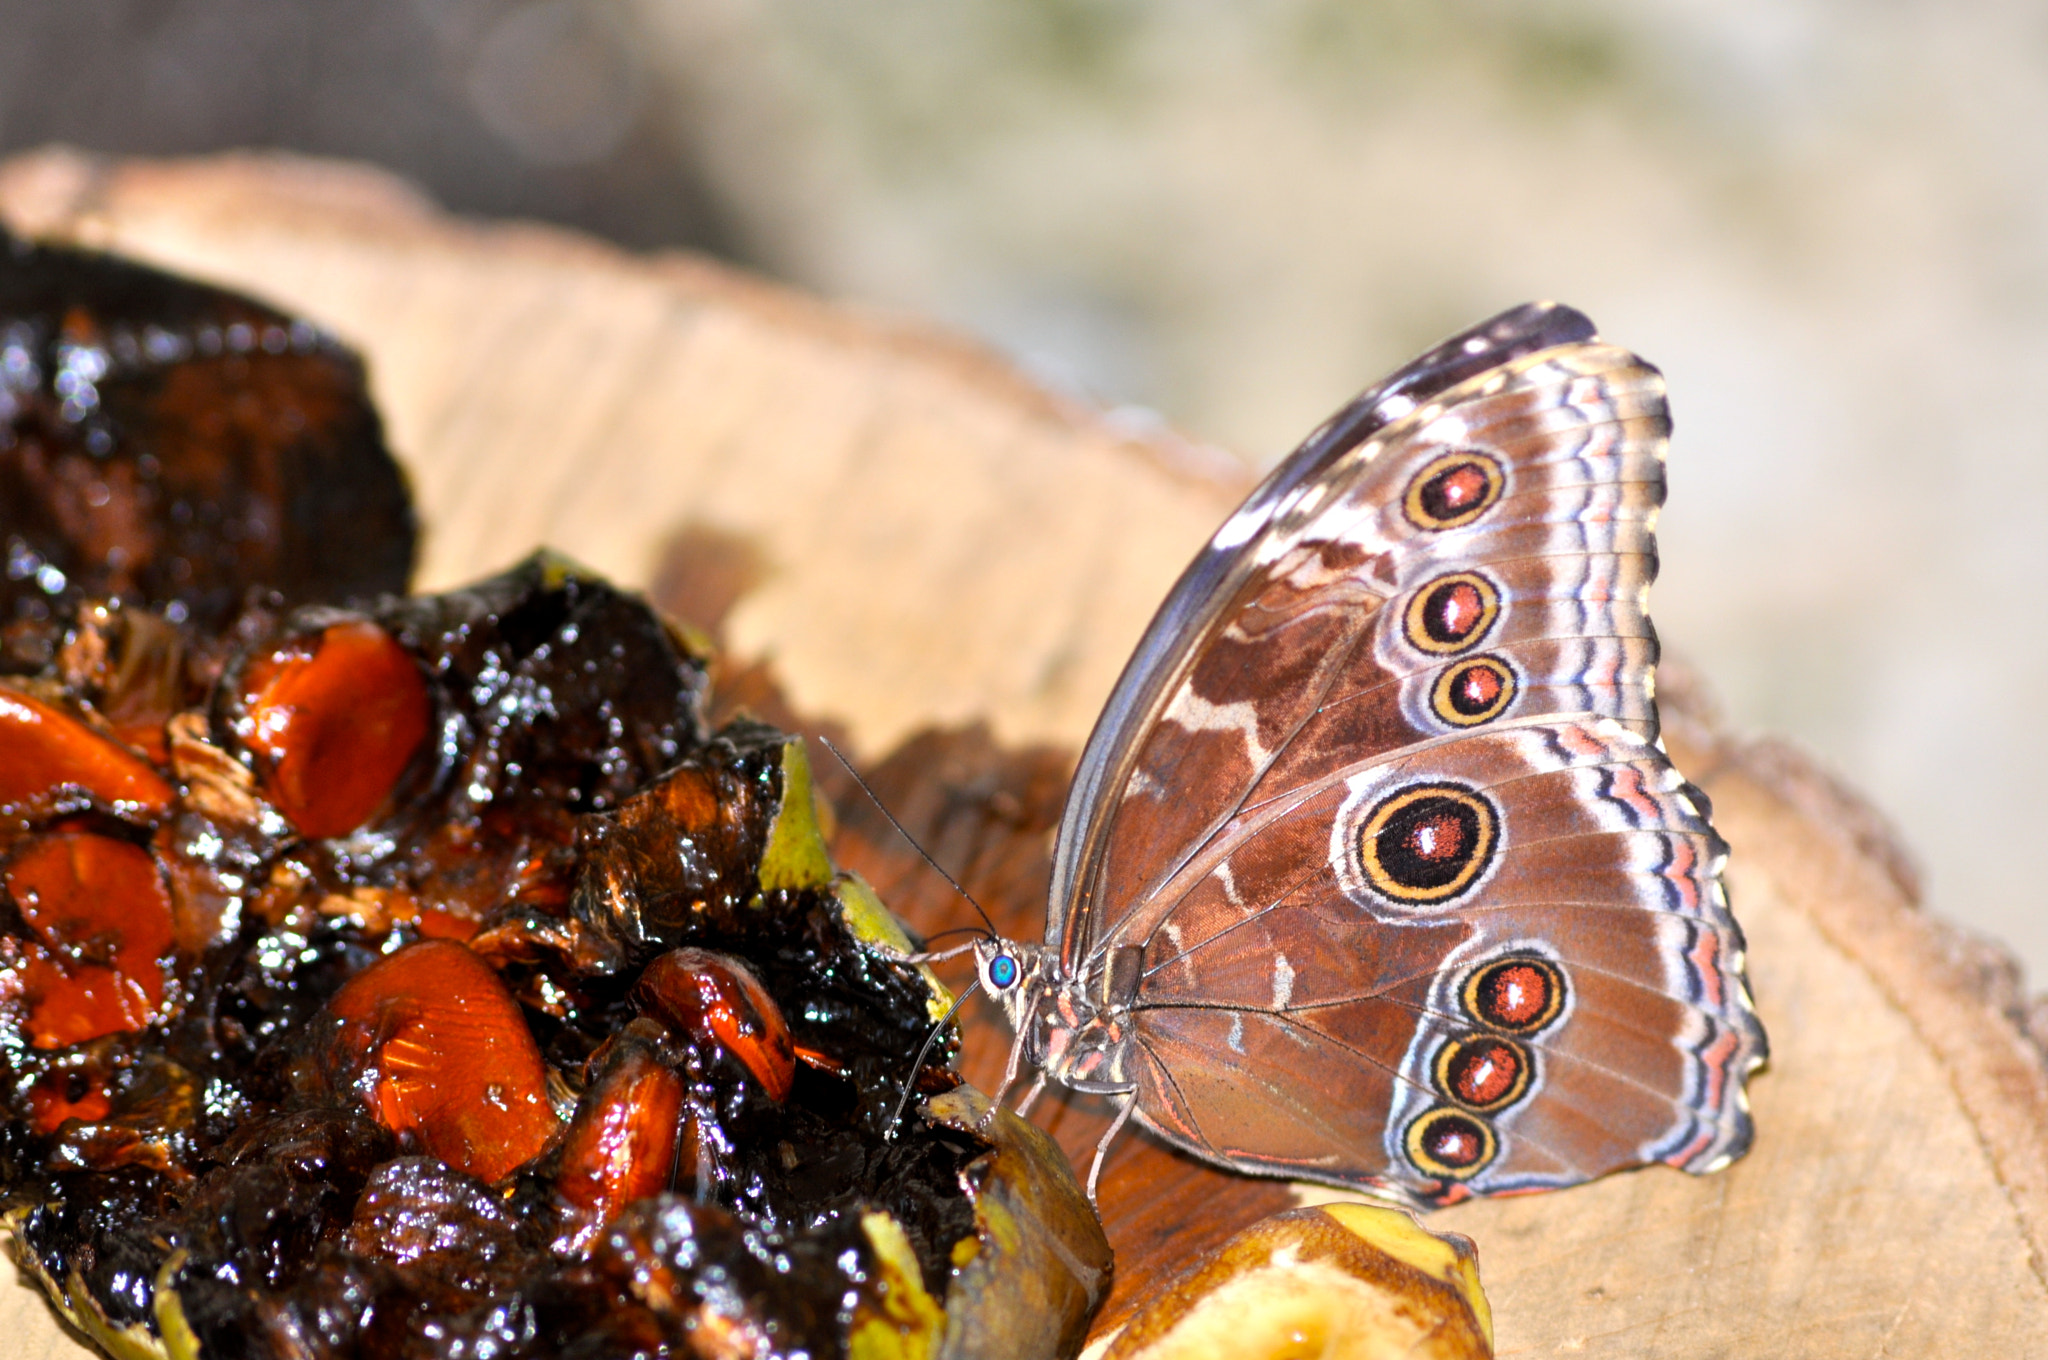 Photograph Butterfly Having Lunch by Vivian Barrios Photography on 500px